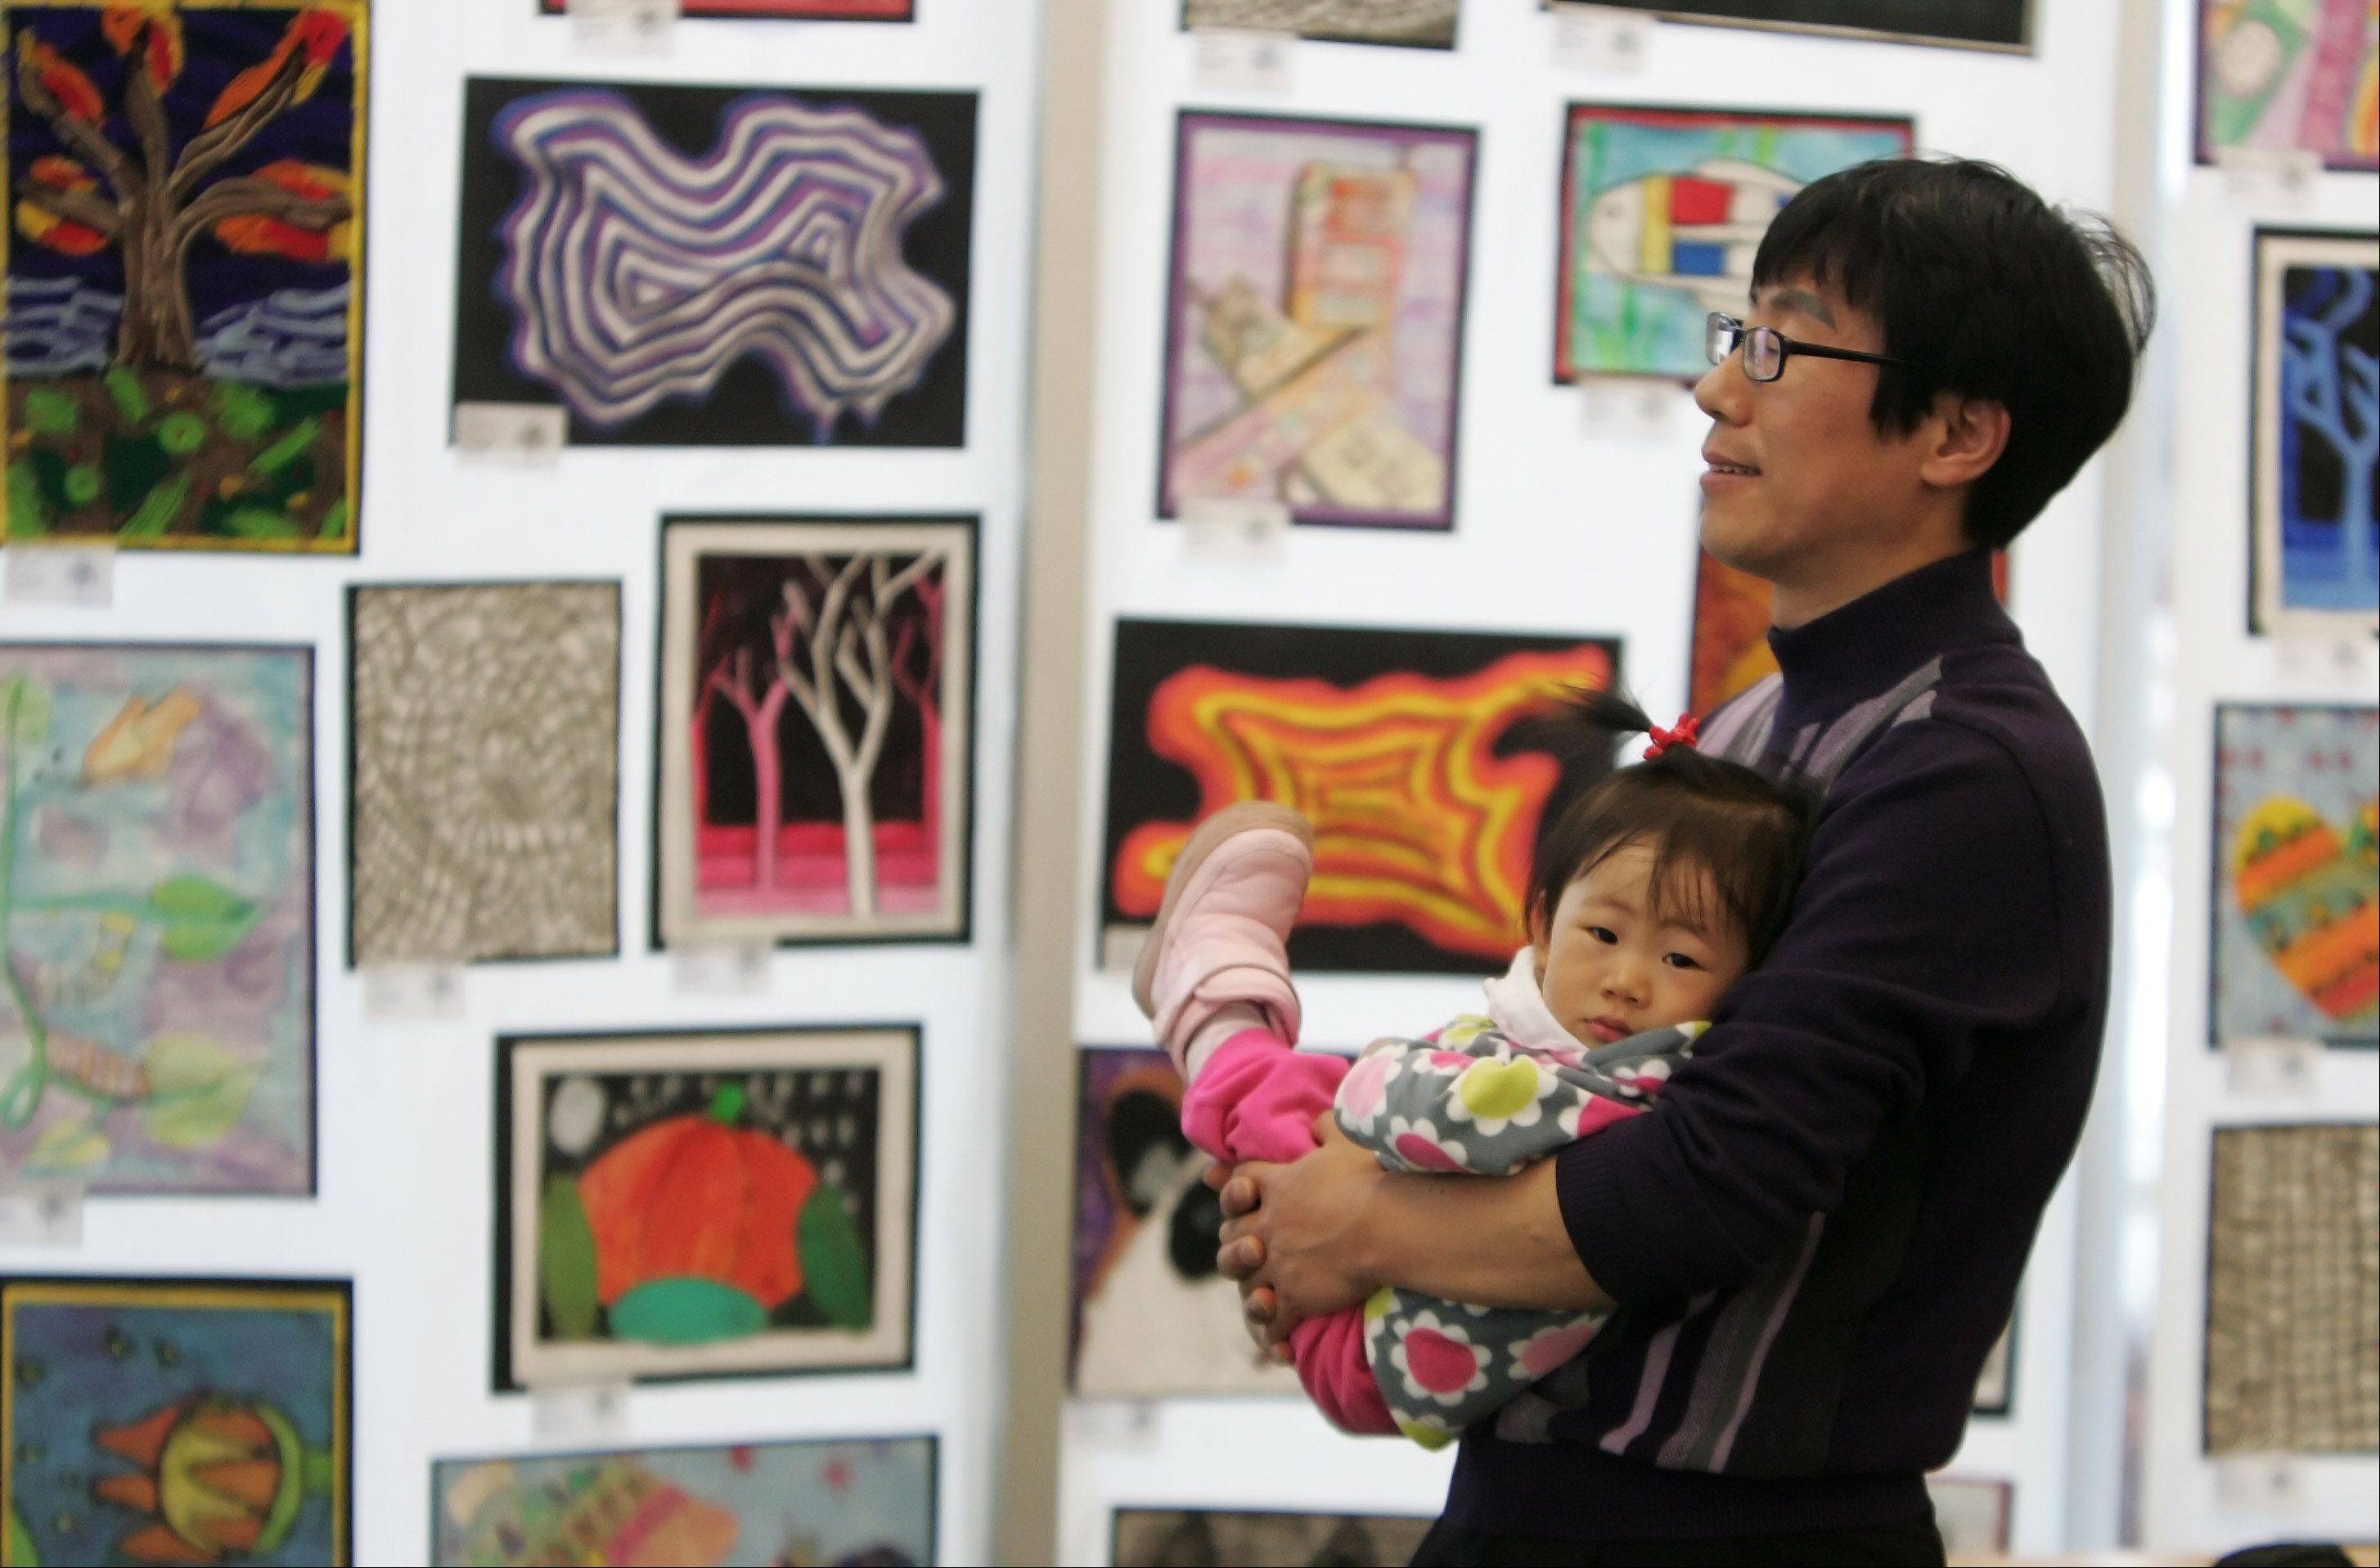 Daniel Choe, of Vernon Hills, holds his daughter, Yehee, as he looks at artwork by students from Townline School during the Hawthorn School District 73 Third Annual Youth Art Show on display at the Aspen Drive Library in Vernon Hills. The show will be up through April 1.